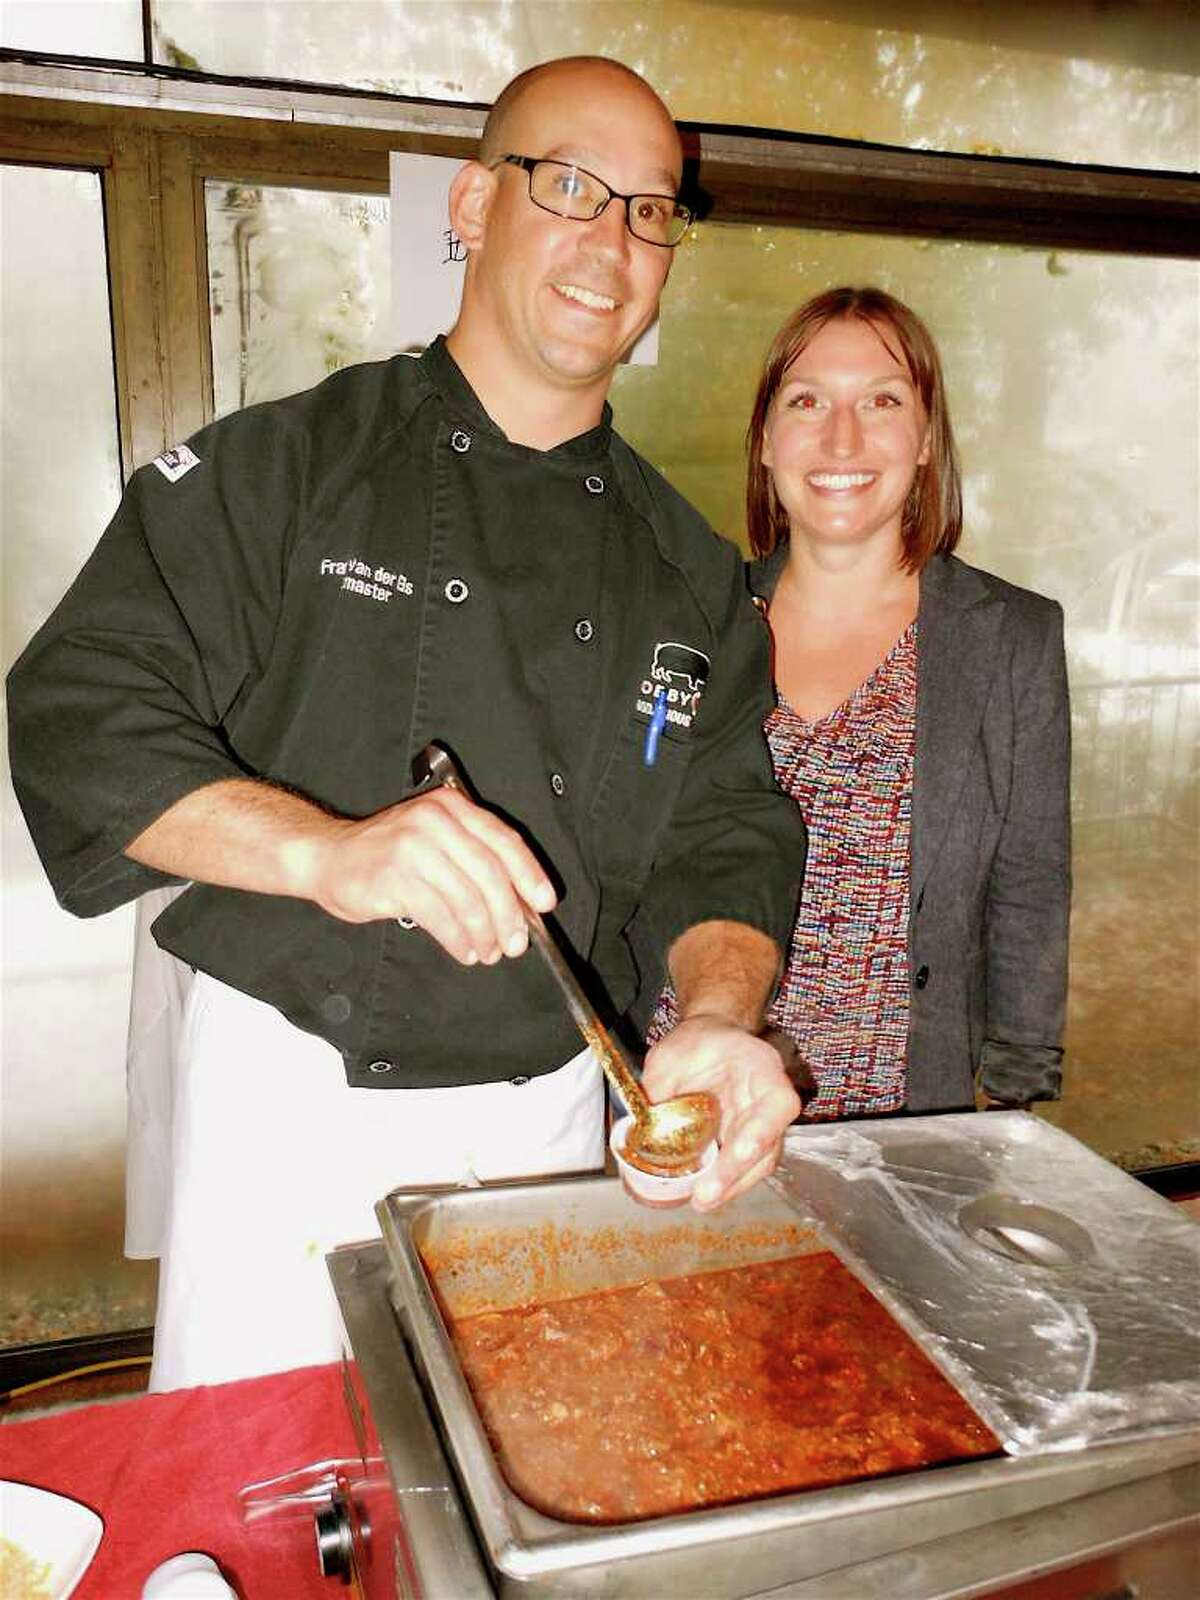 Bobby Q's Restaurant Pitmaster Frans van der Els, serving Smokehouse Chili with Sarah Colwell at the Chilifest on Saturday in Westport.